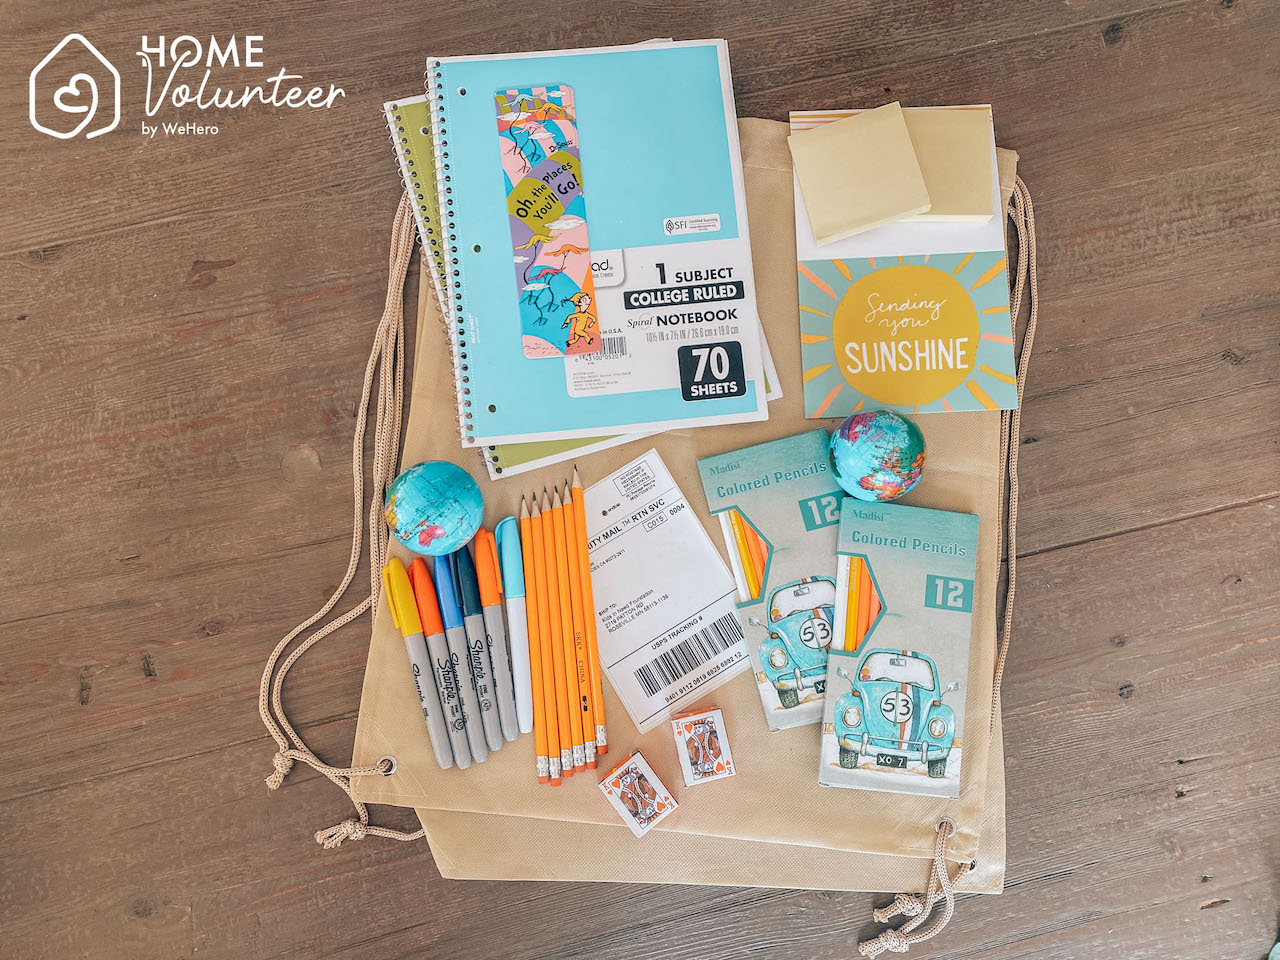 Home Volunteer Education Access Kit